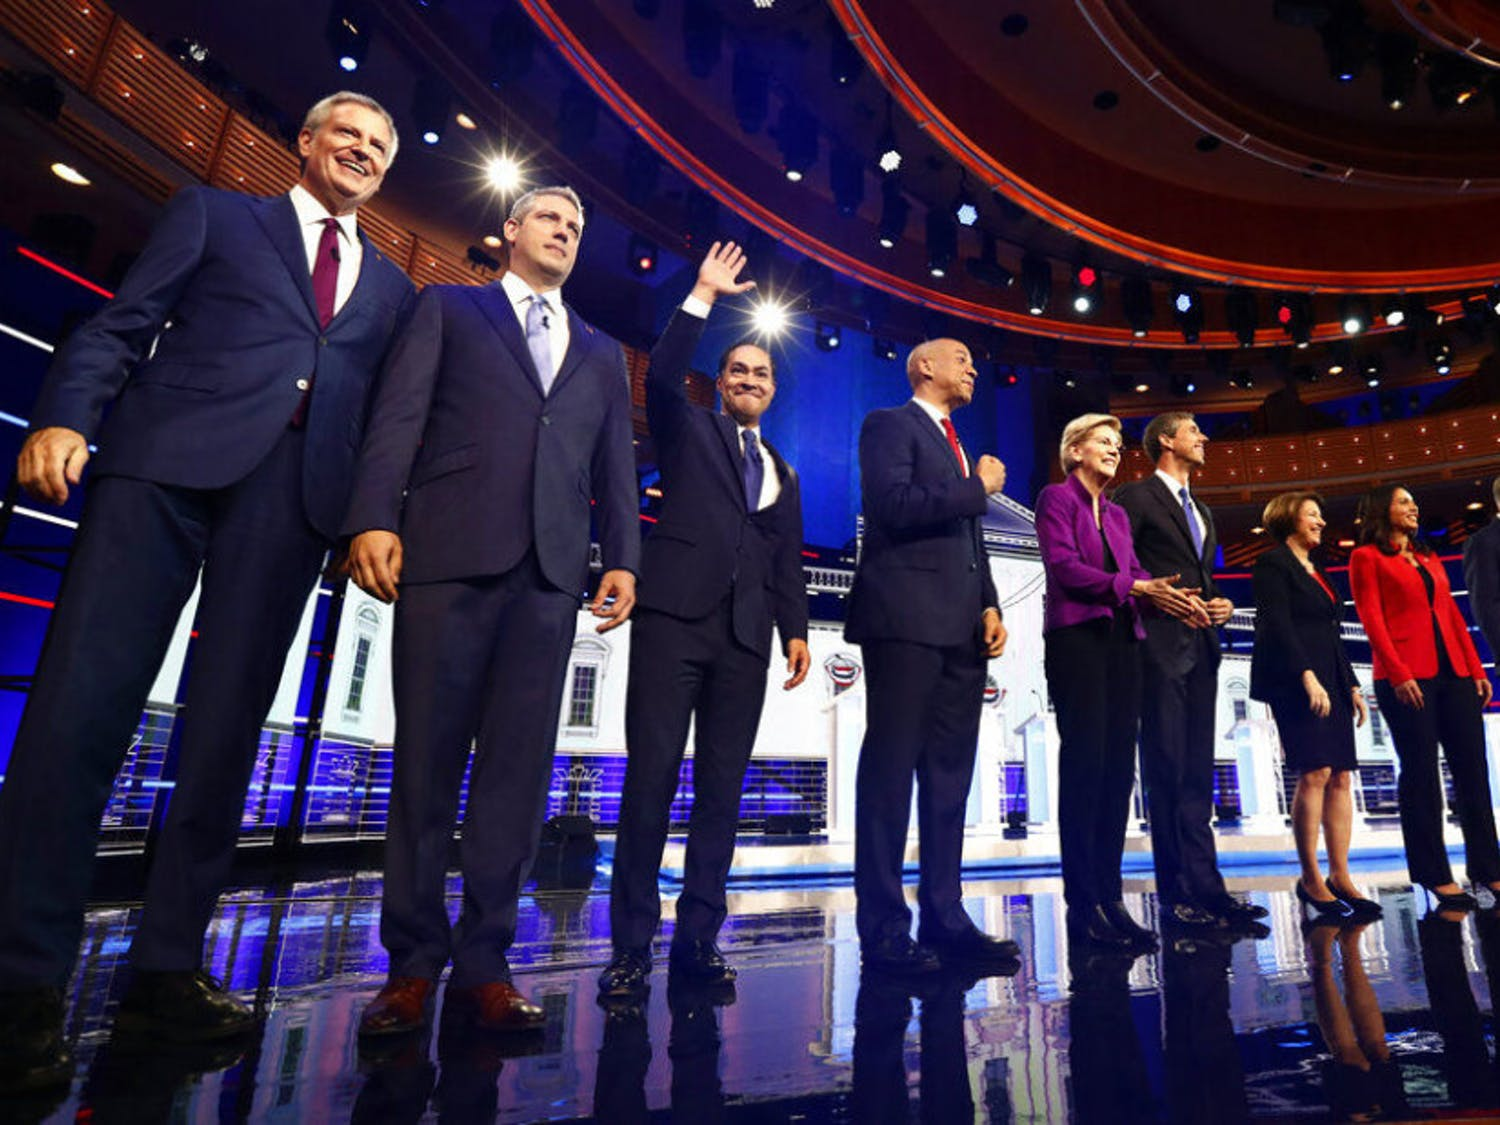 From left, New York City Mayor Bill de Blasio, Rep. Tim Ryan, D-Ohio, former Housing and Urban Development Secretary Julian Castro, Sen. Cory Booker, D-N.J., Sen. Elizabeth Warren, D-Mass., former Texas Rep. Beto O'Rourke, Sen. Amy Klobuchar, D-Minn., Rep. Tulsi Gabbard, D-Hawaii, Washington Gov. Jay Inslee, and former Maryland Rep. John Delaney pose for a photo on stage before the start of a Democratic primary debate hosted by NBC News at the Adrienne Arsht Center for the Performing Arts, Wednesday, June 26, 2019, in Miami.